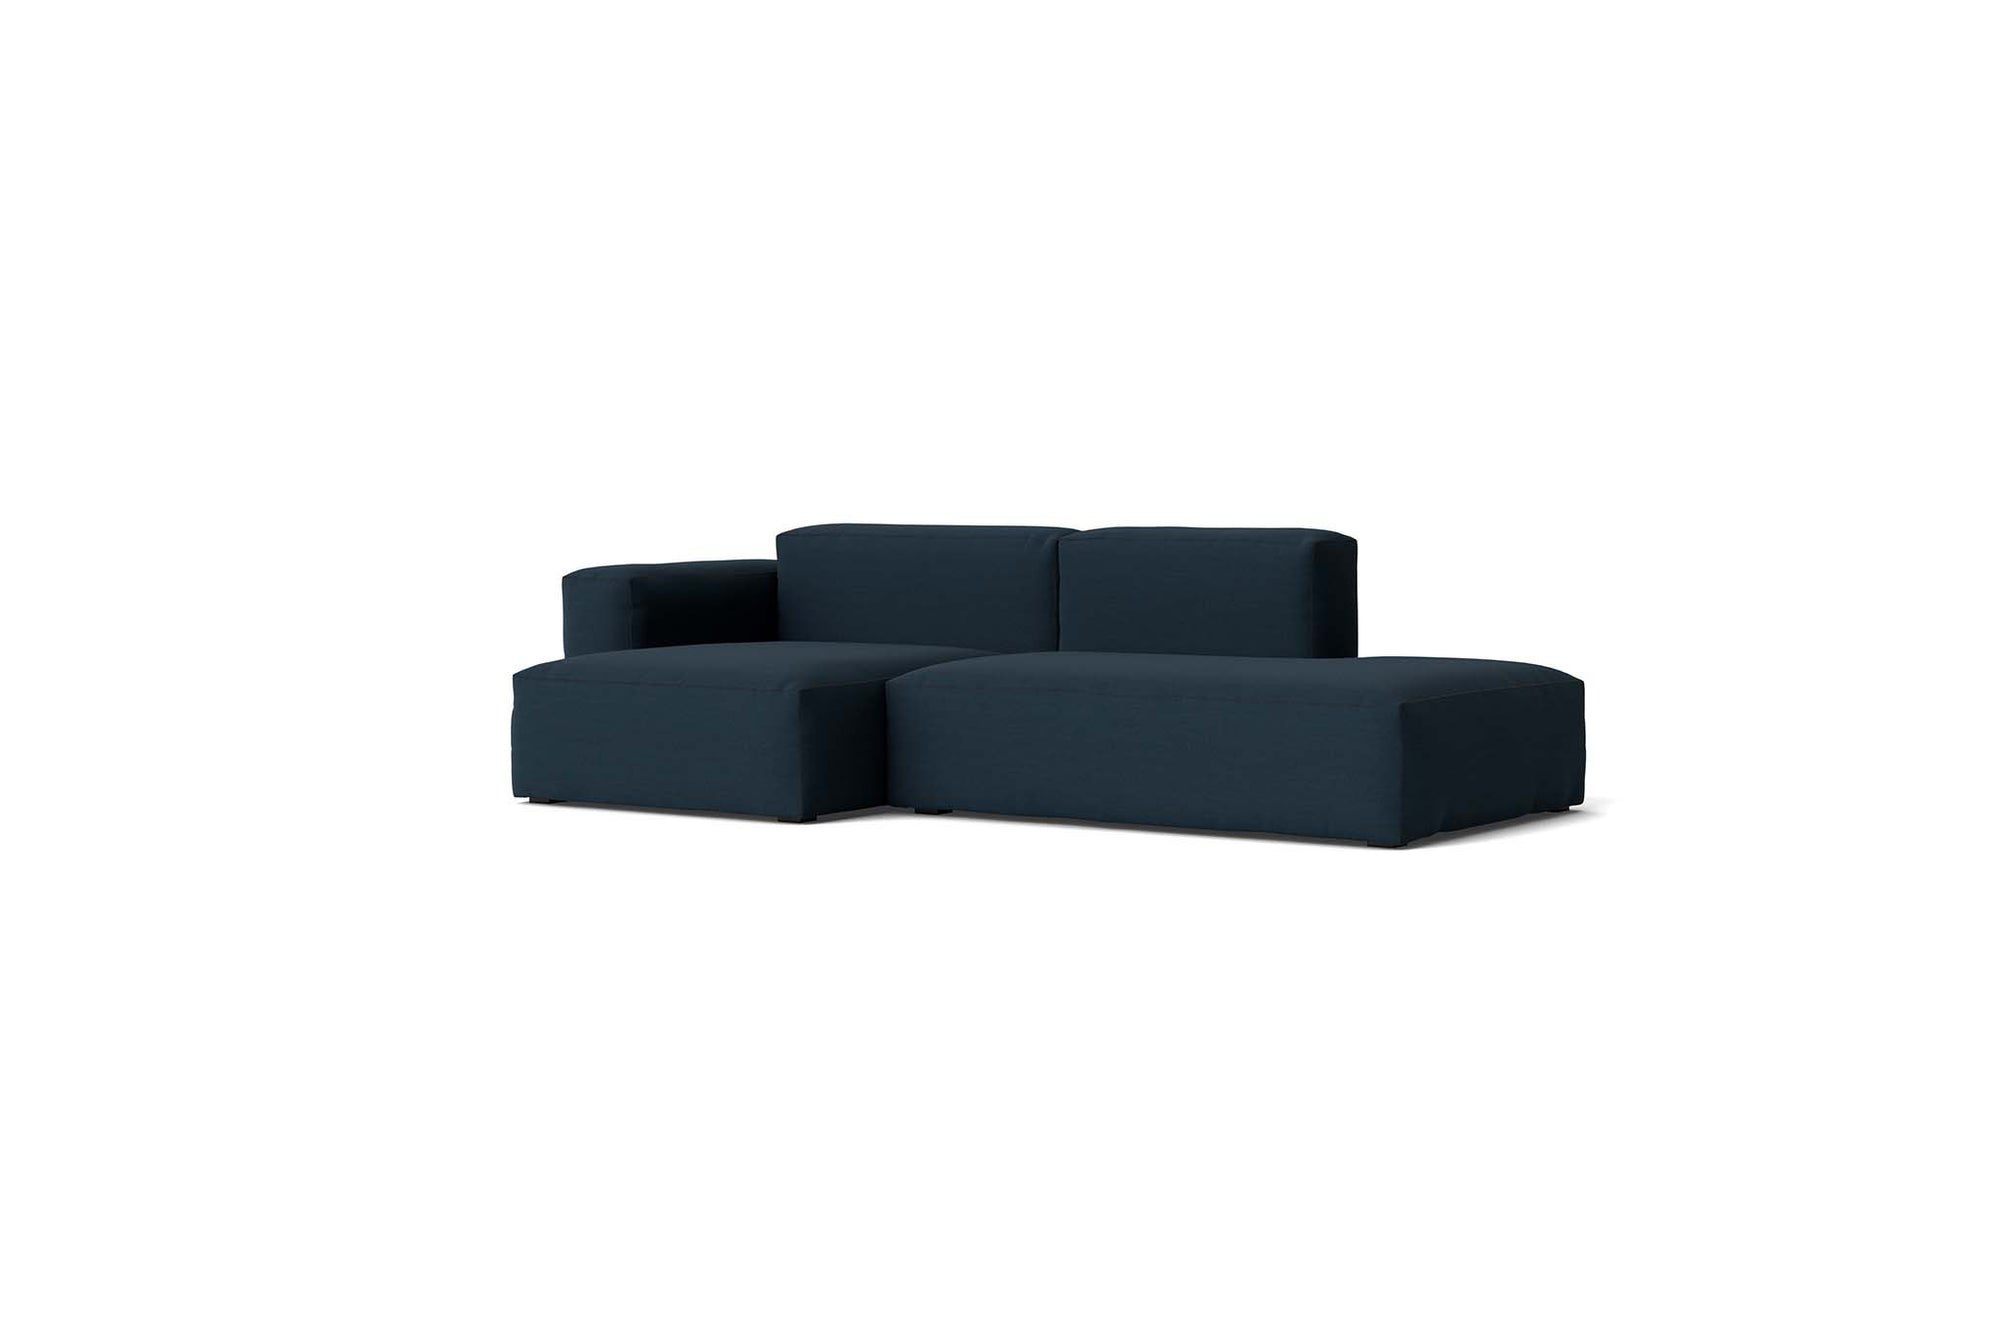 HAY - Mags Soft Low Sofa - 2.5 Seater - Combination 3 with Left Low Armrest